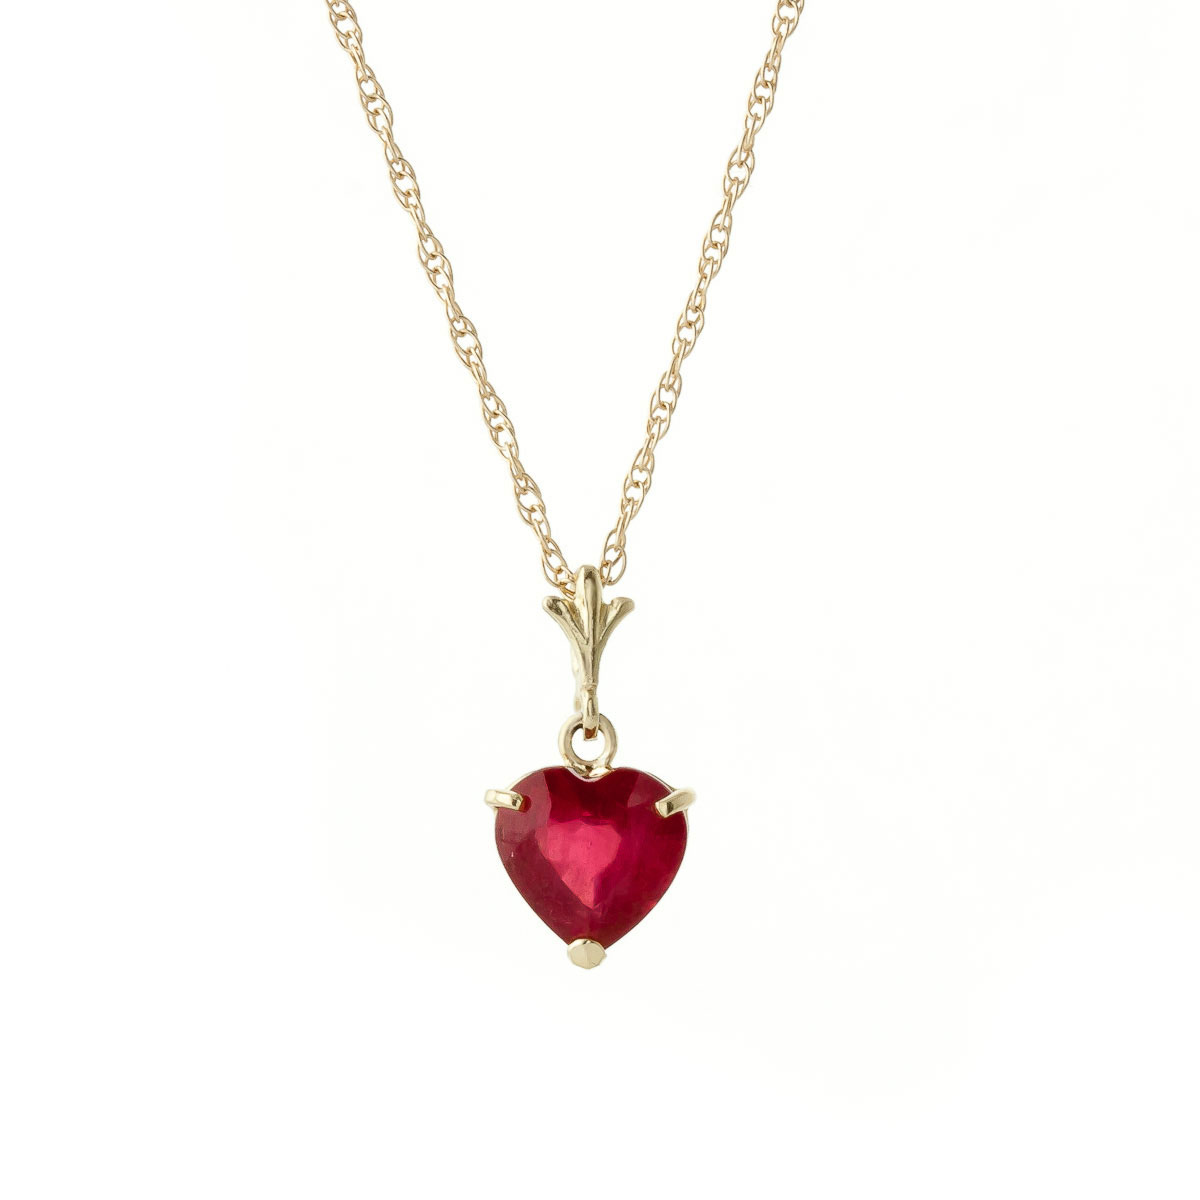 Ruby Heart Pendant Necklace 1.45ct in 9ct Gold